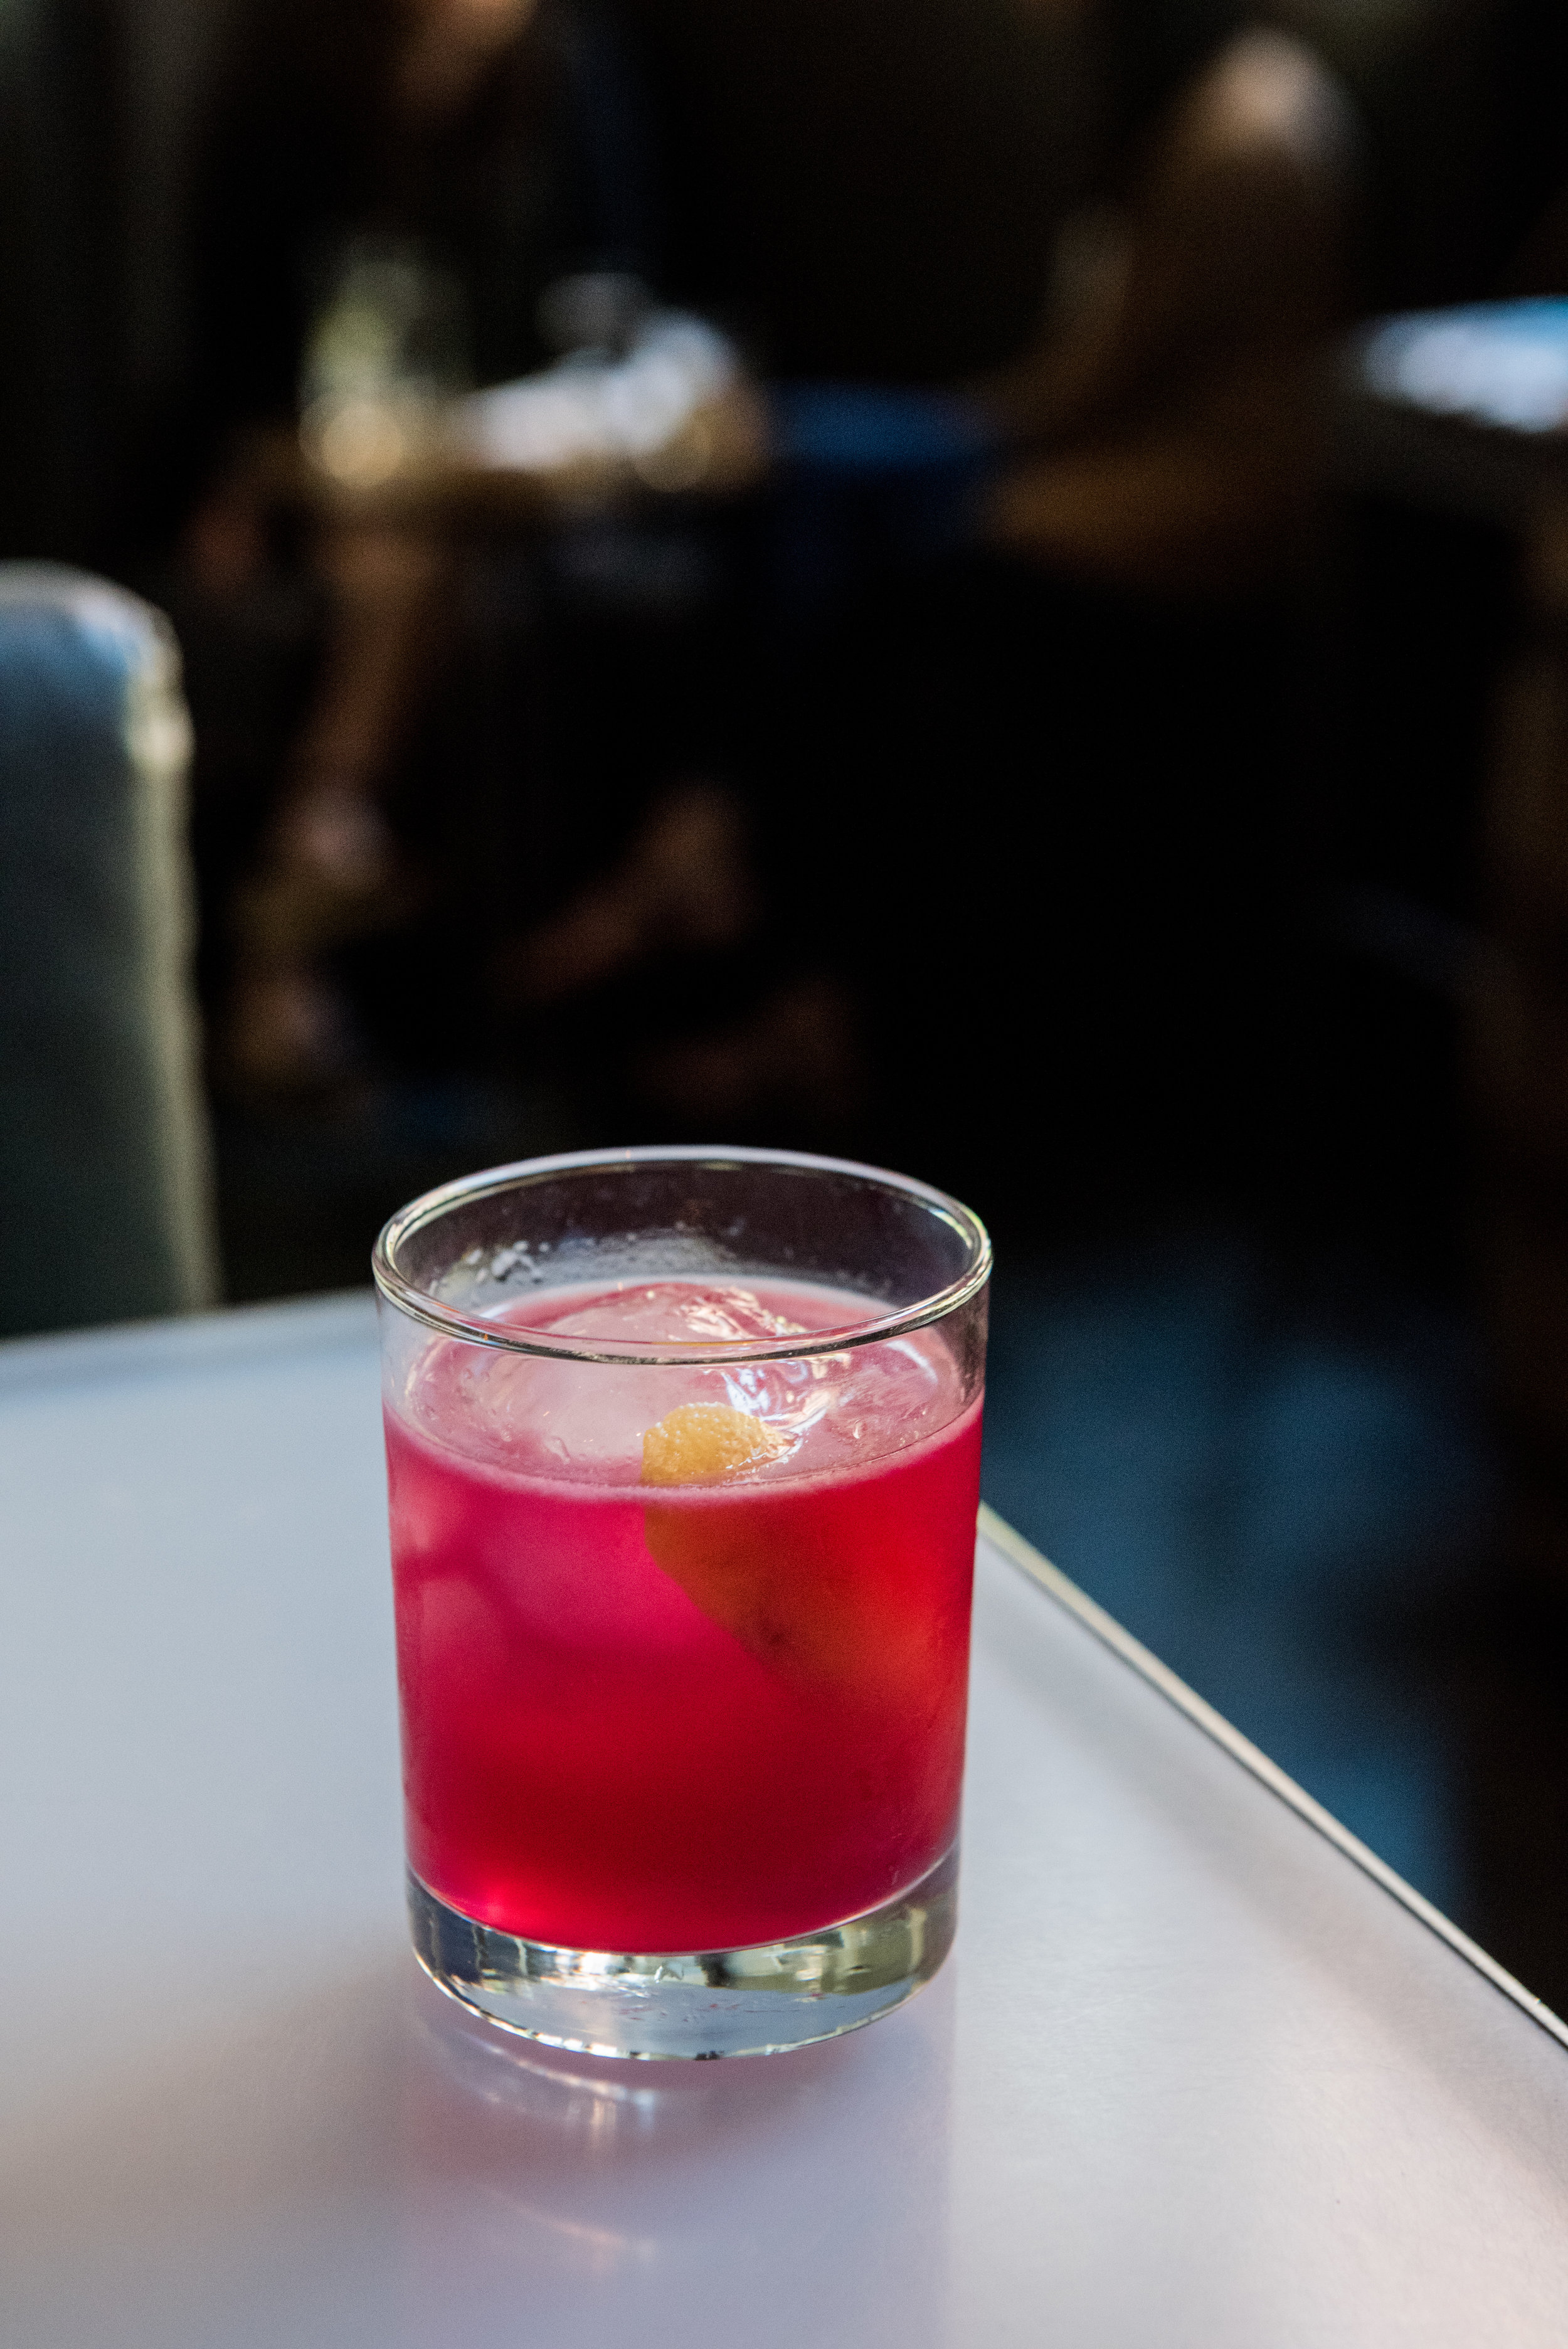 Rasputin's Eye - CH Vodka, CH Rum, Beet, Hibiscus, Lemongrass, Serrano Pepper, Fennel, Lemon(Tangy and spicy)